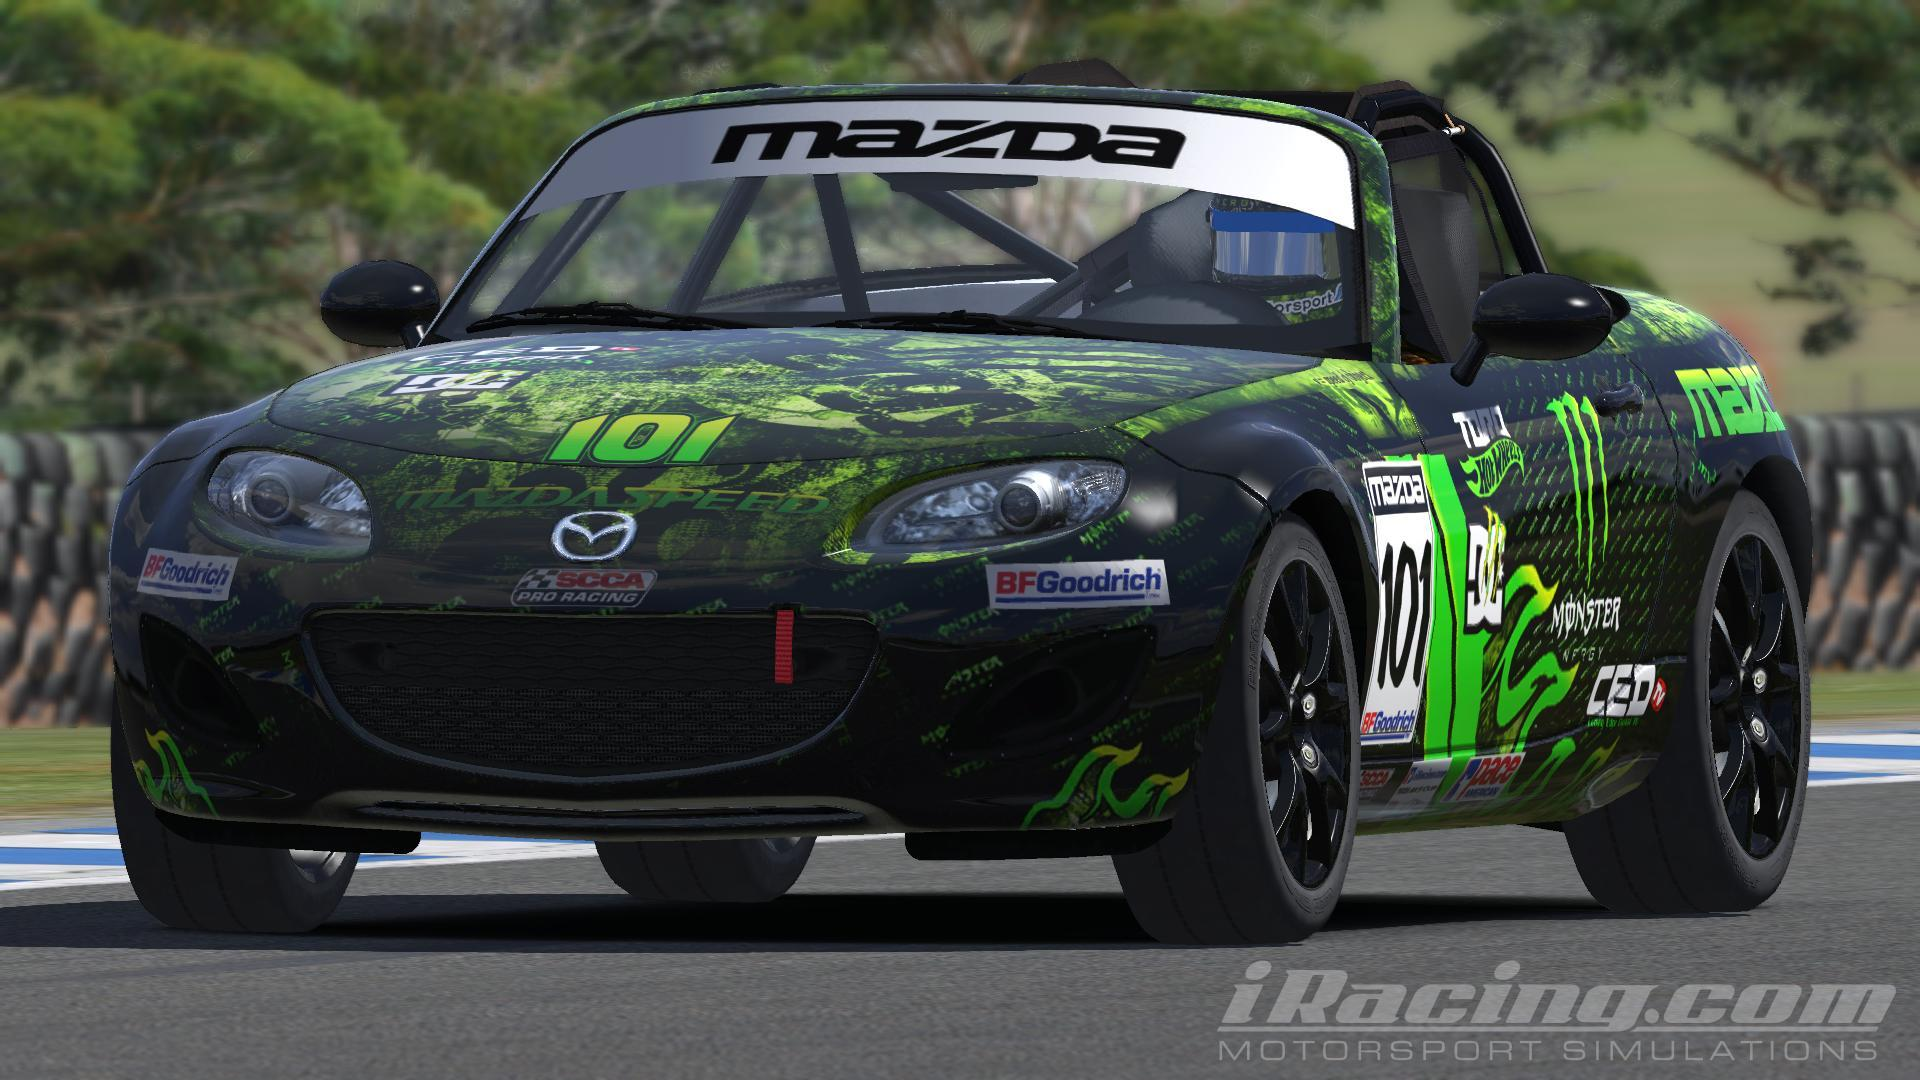 monster energy mazda cup circa 2015 by marshall w. Black Bedroom Furniture Sets. Home Design Ideas